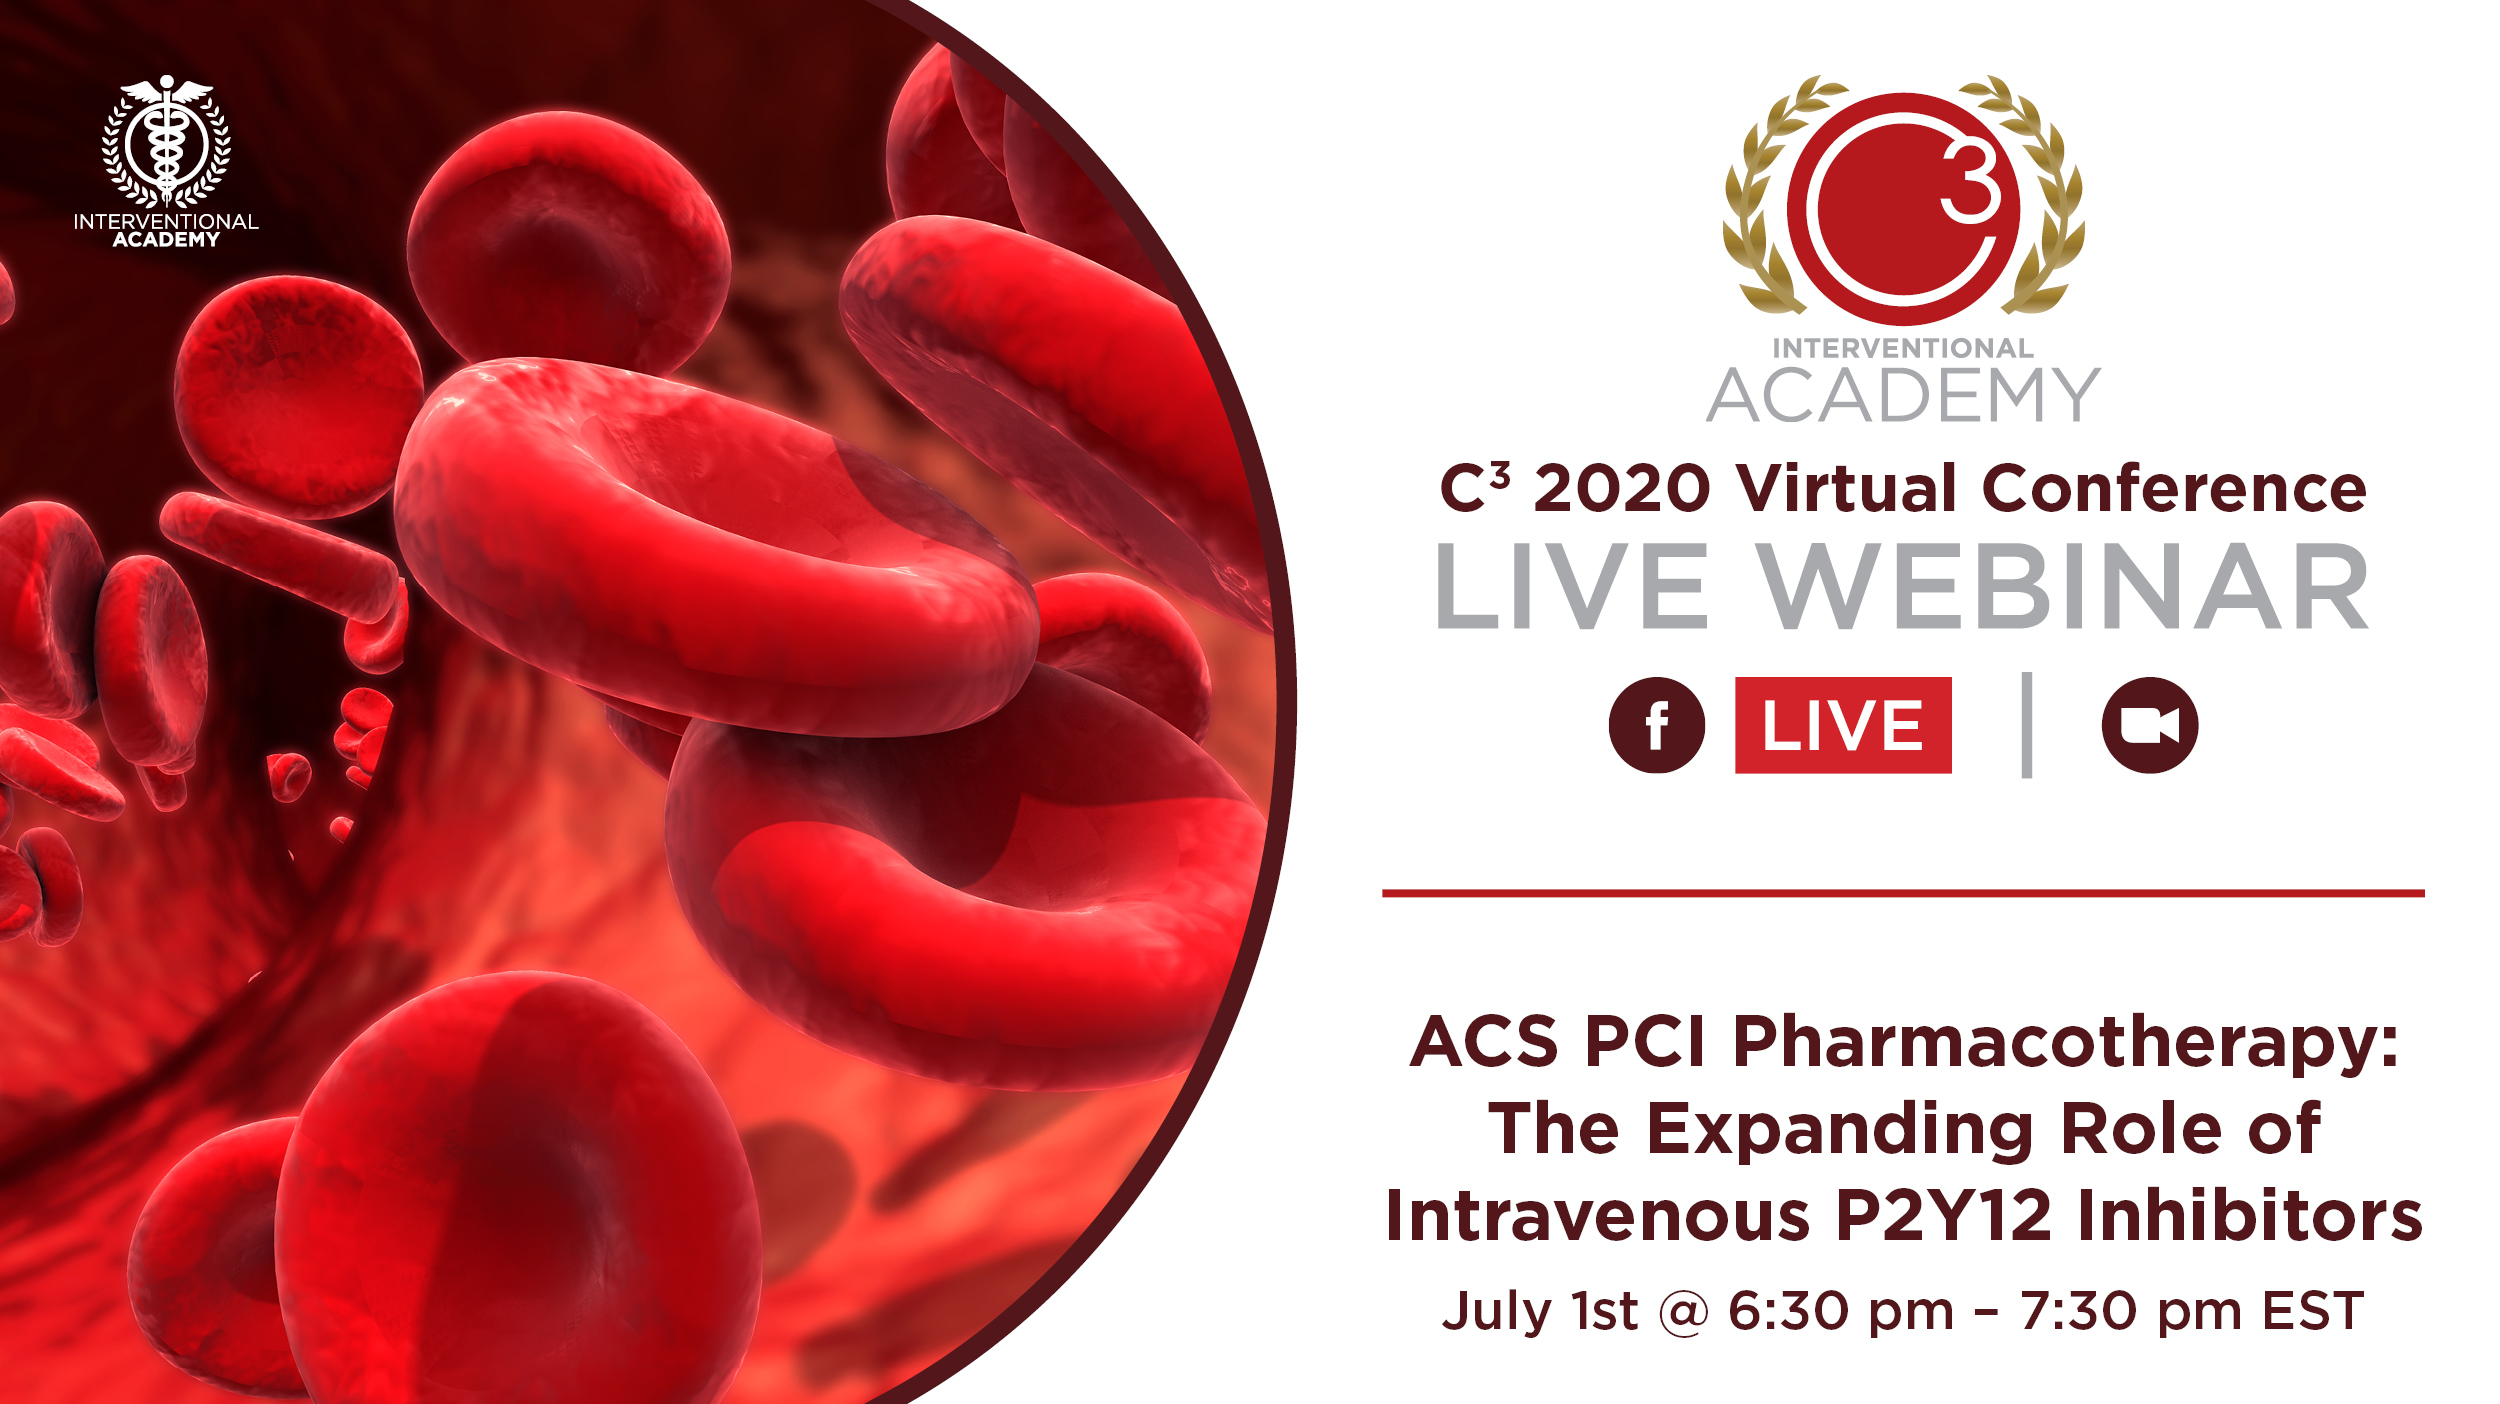 Role of Intravenous P2Y12 Inhibitors